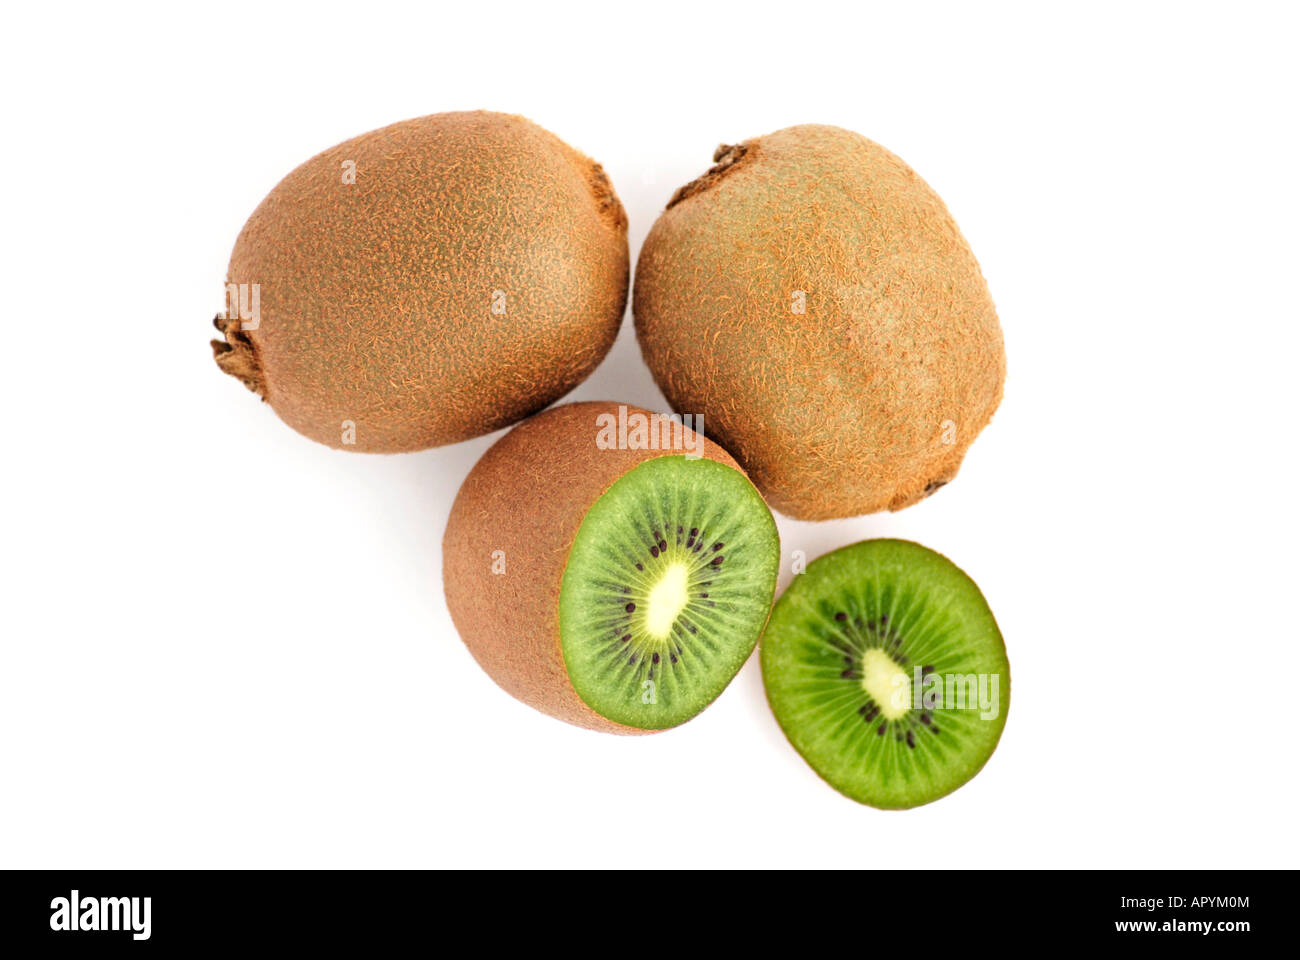 Two whole and one sliced Kiwi - Stock Image